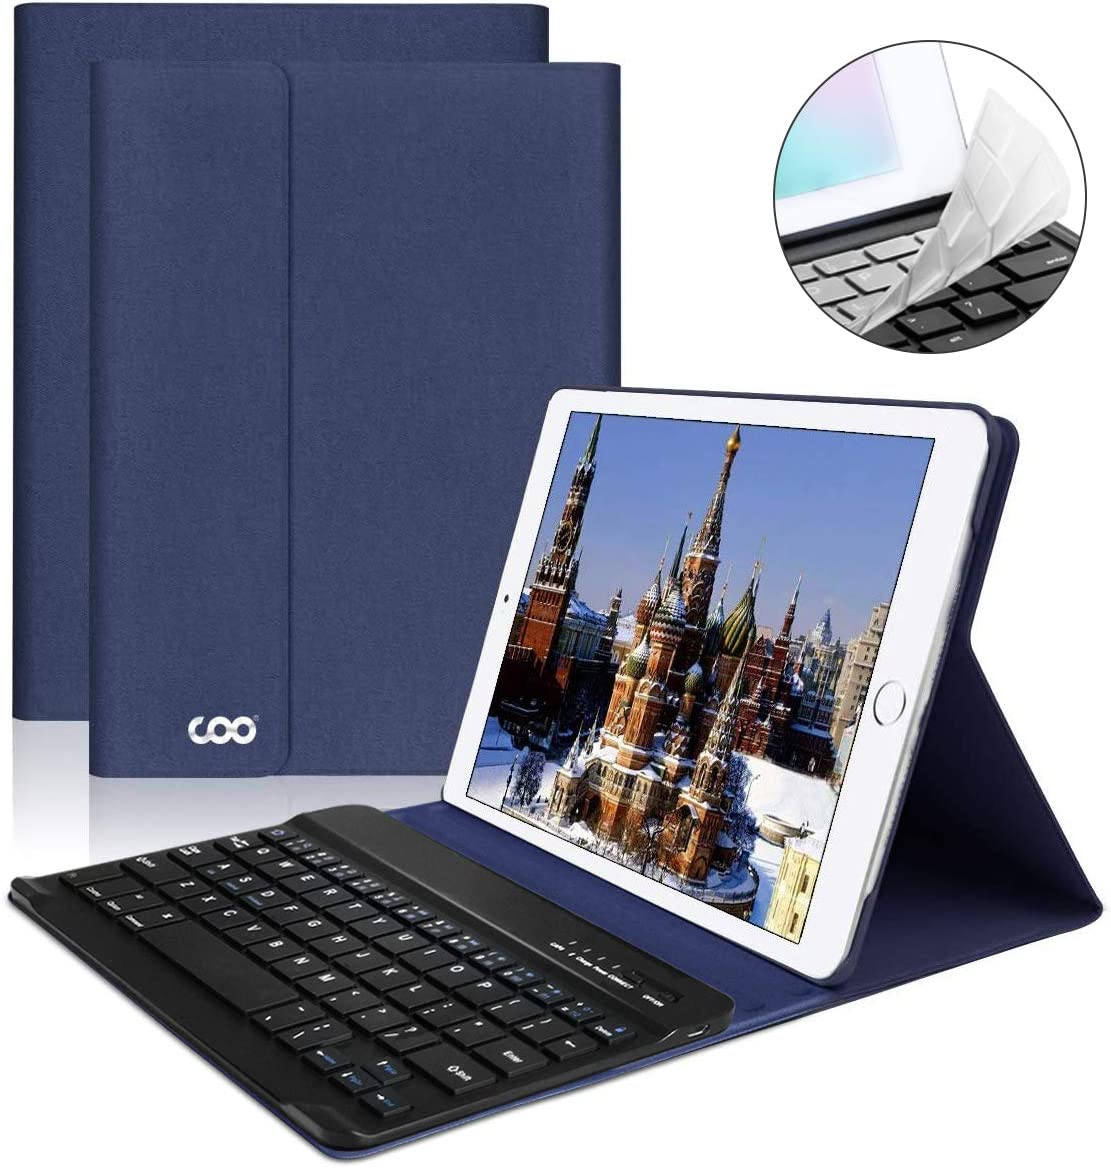 iPad Keyboard Case 9.7 for New iPad 2018 (6th Gen) - iPad Pro 2017 (5th Gen) - iPad Air 2/1 - COO Detachable Wireless Bluetooth Keyboard - Magnetic Auto Sleep/Wake (Dark Blue with Black Keyboard)